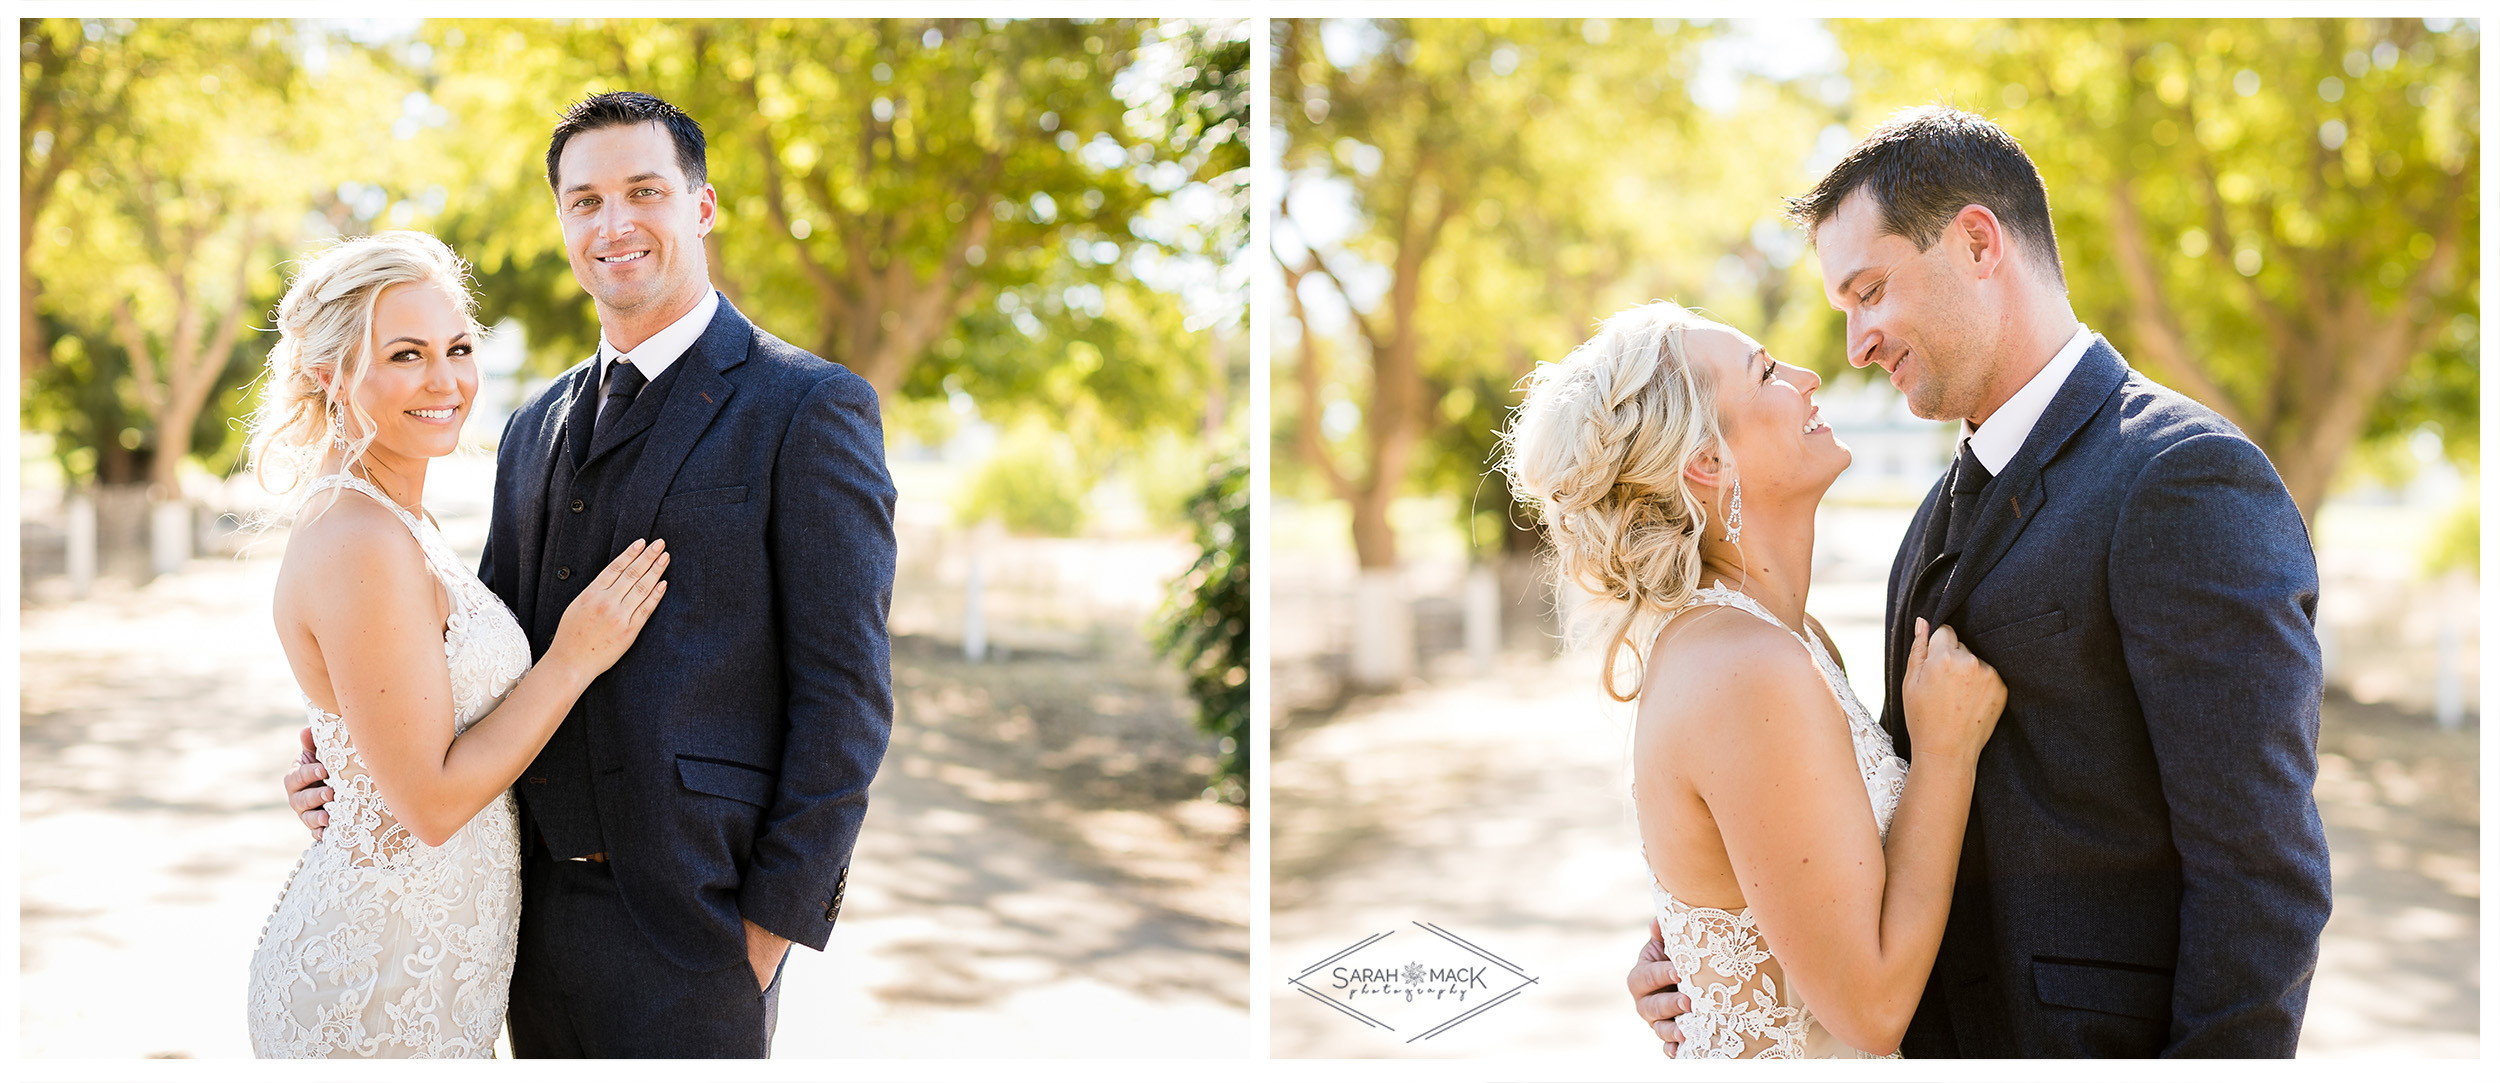 MA-Chandler-Ranch-Paso-Robles-Wedding-Photography-41.jpg